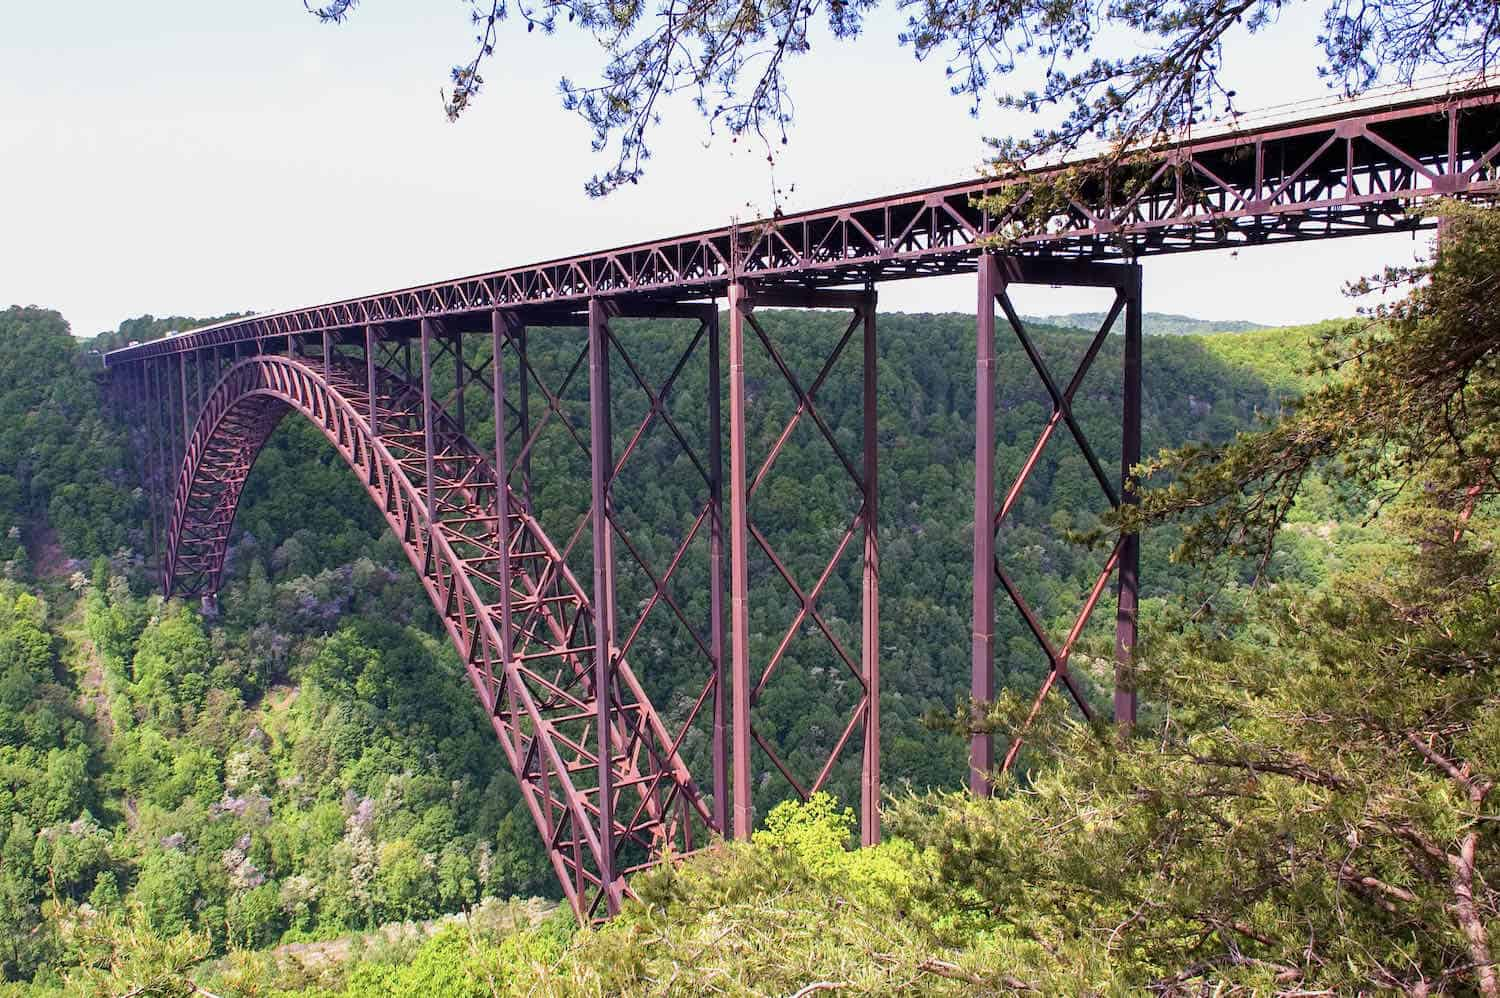 Rust-colored iron bridge stretching across the New River